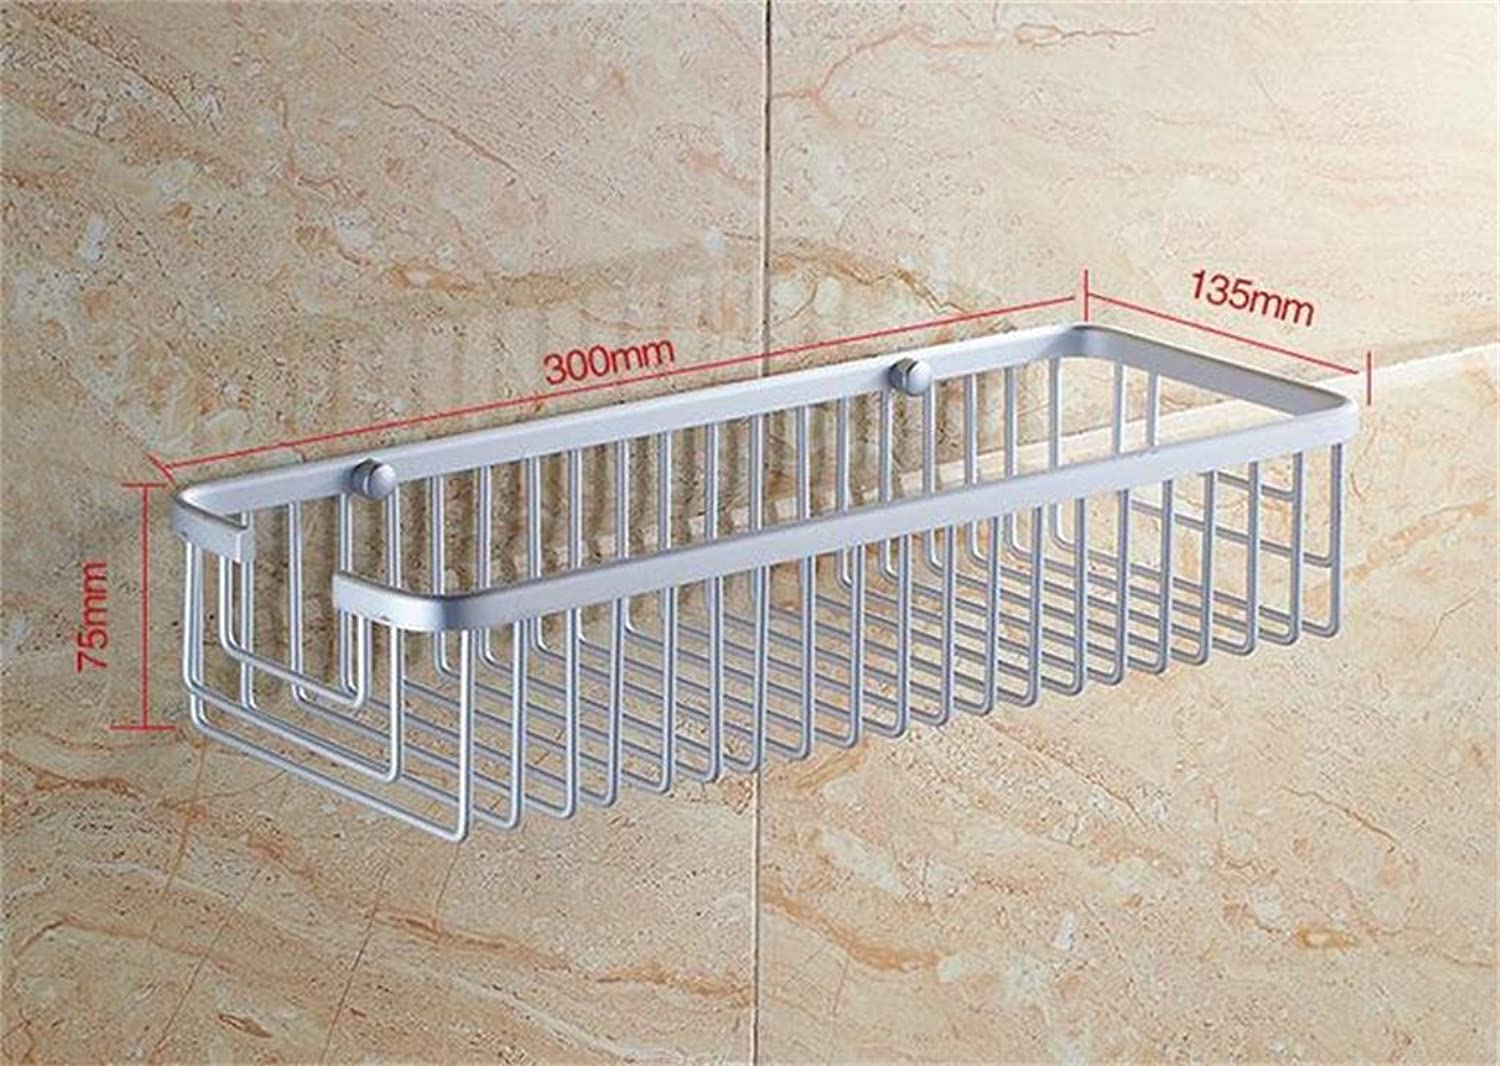 Space Aluminum Bathroom Racks Embedded Screw Racks Bathroom Shelf Kitchen Multifunction (color   2)